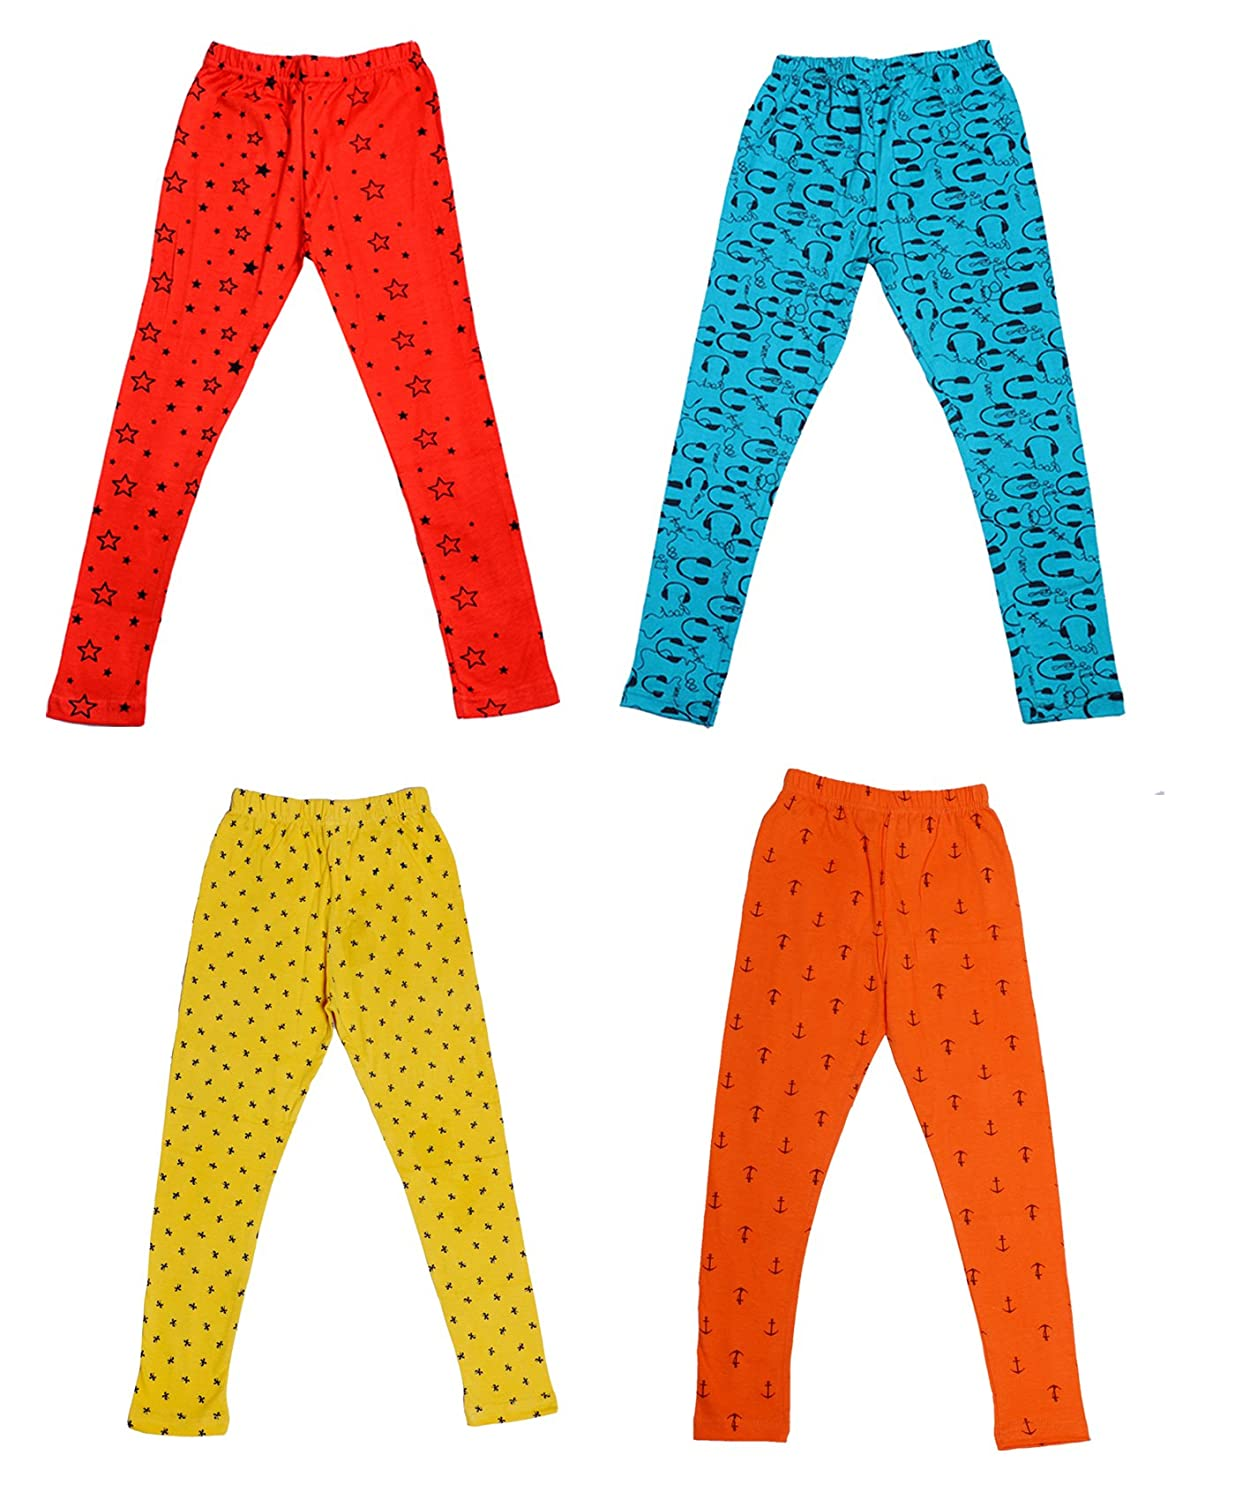 Pack of 3 Indistar Girls Super Soft and Stylish Cotton Printed Churidar Legging